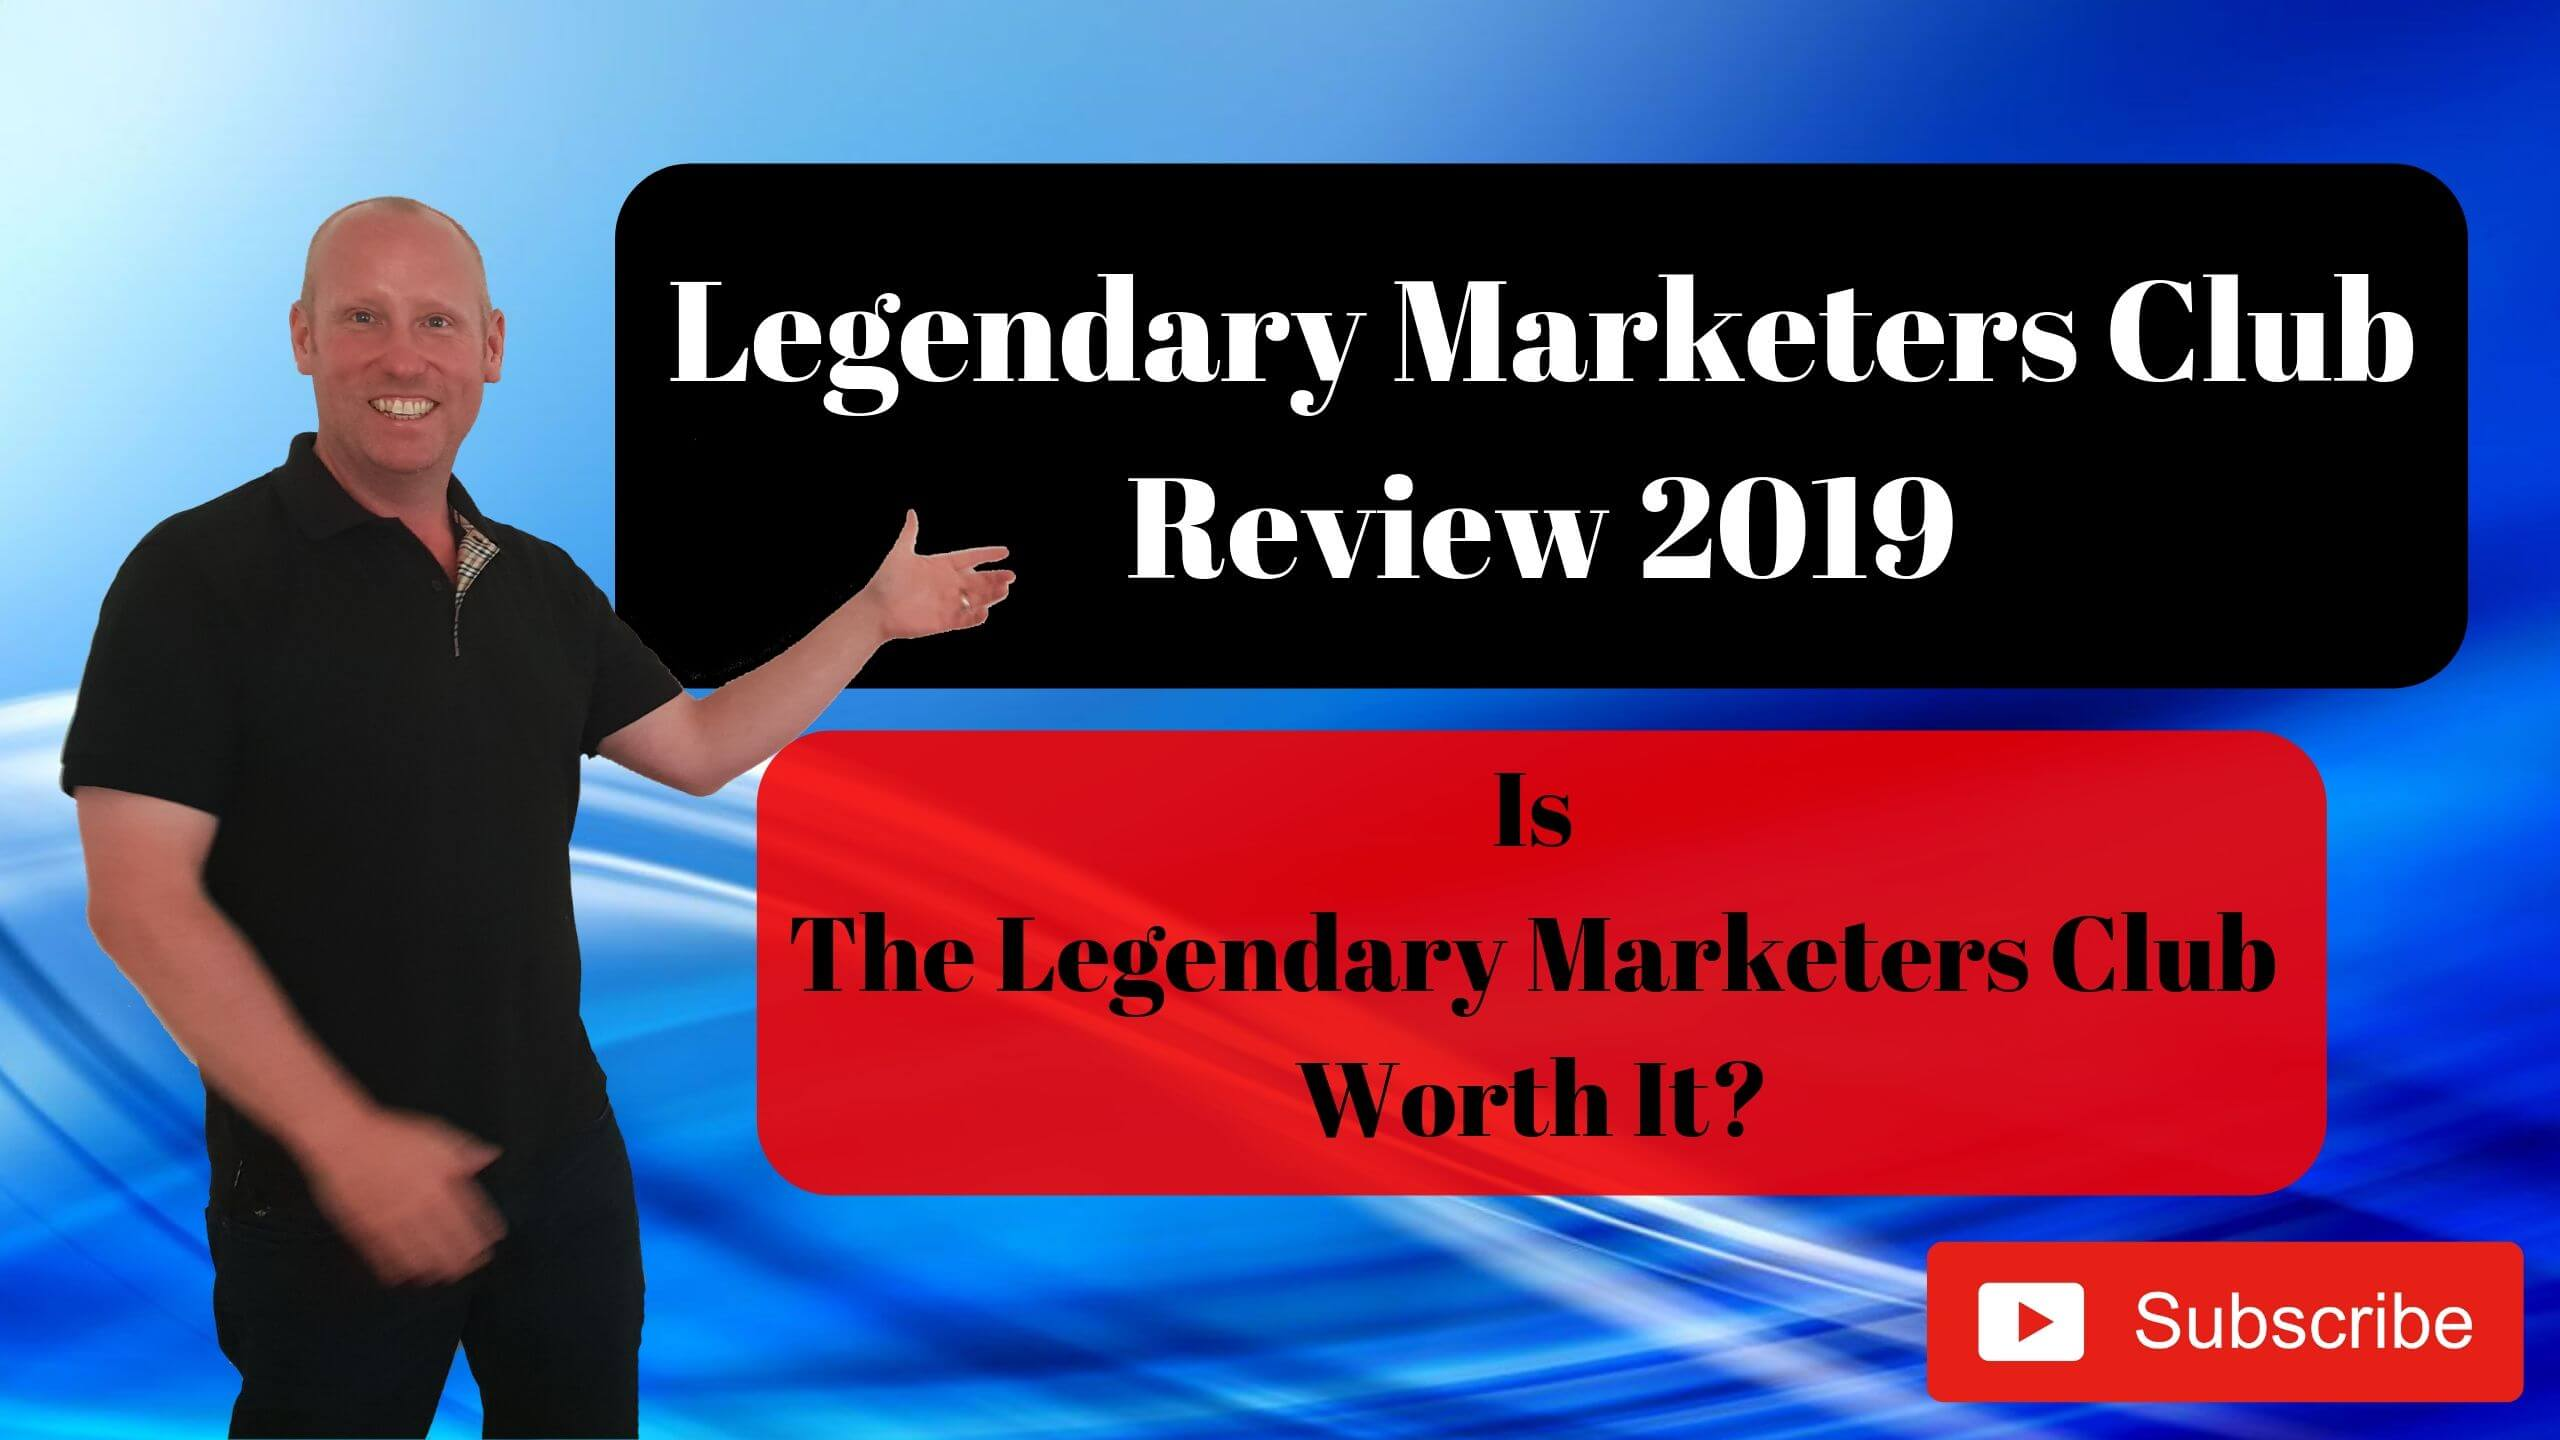 Legendary Marketer Offers 2020